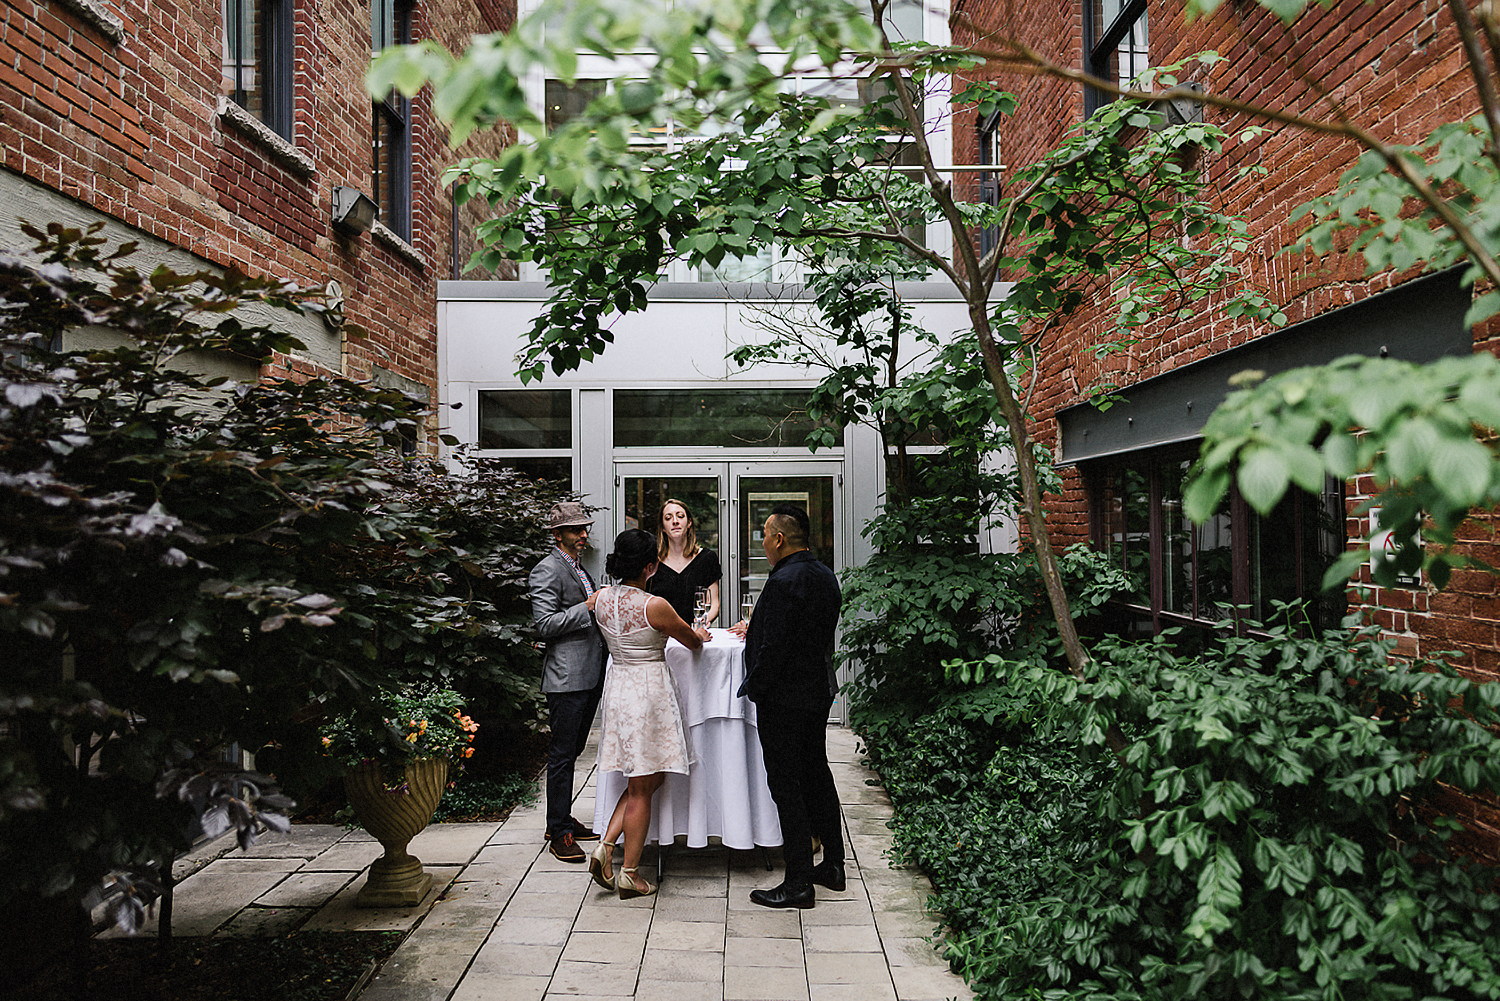 Best-Toronto-Wedding-Photographers_High-Park-Wedding_The-Lodge-Wedding_George-Restaurant-Reception_Analog-Film_Intimate-Candid-Photography_Guests-Detail_Outdoor-Summer-Wedding-Toronto_Casual-Restaurant-Wedding-Bride-and-Groom-Toronto.jpg